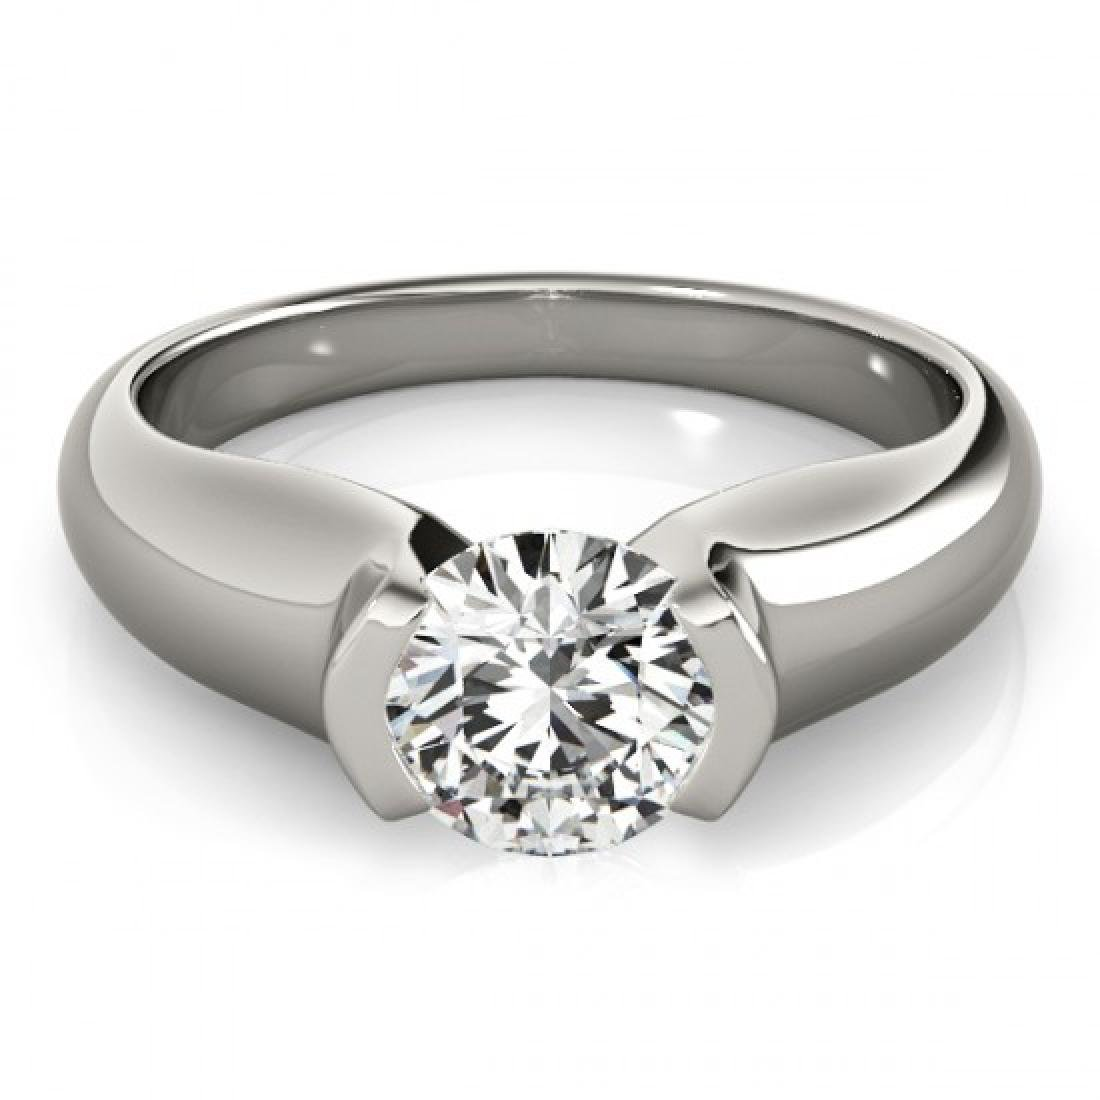 0.5 CTW Certified VS/SI Diamond Solitaire Ring 14K